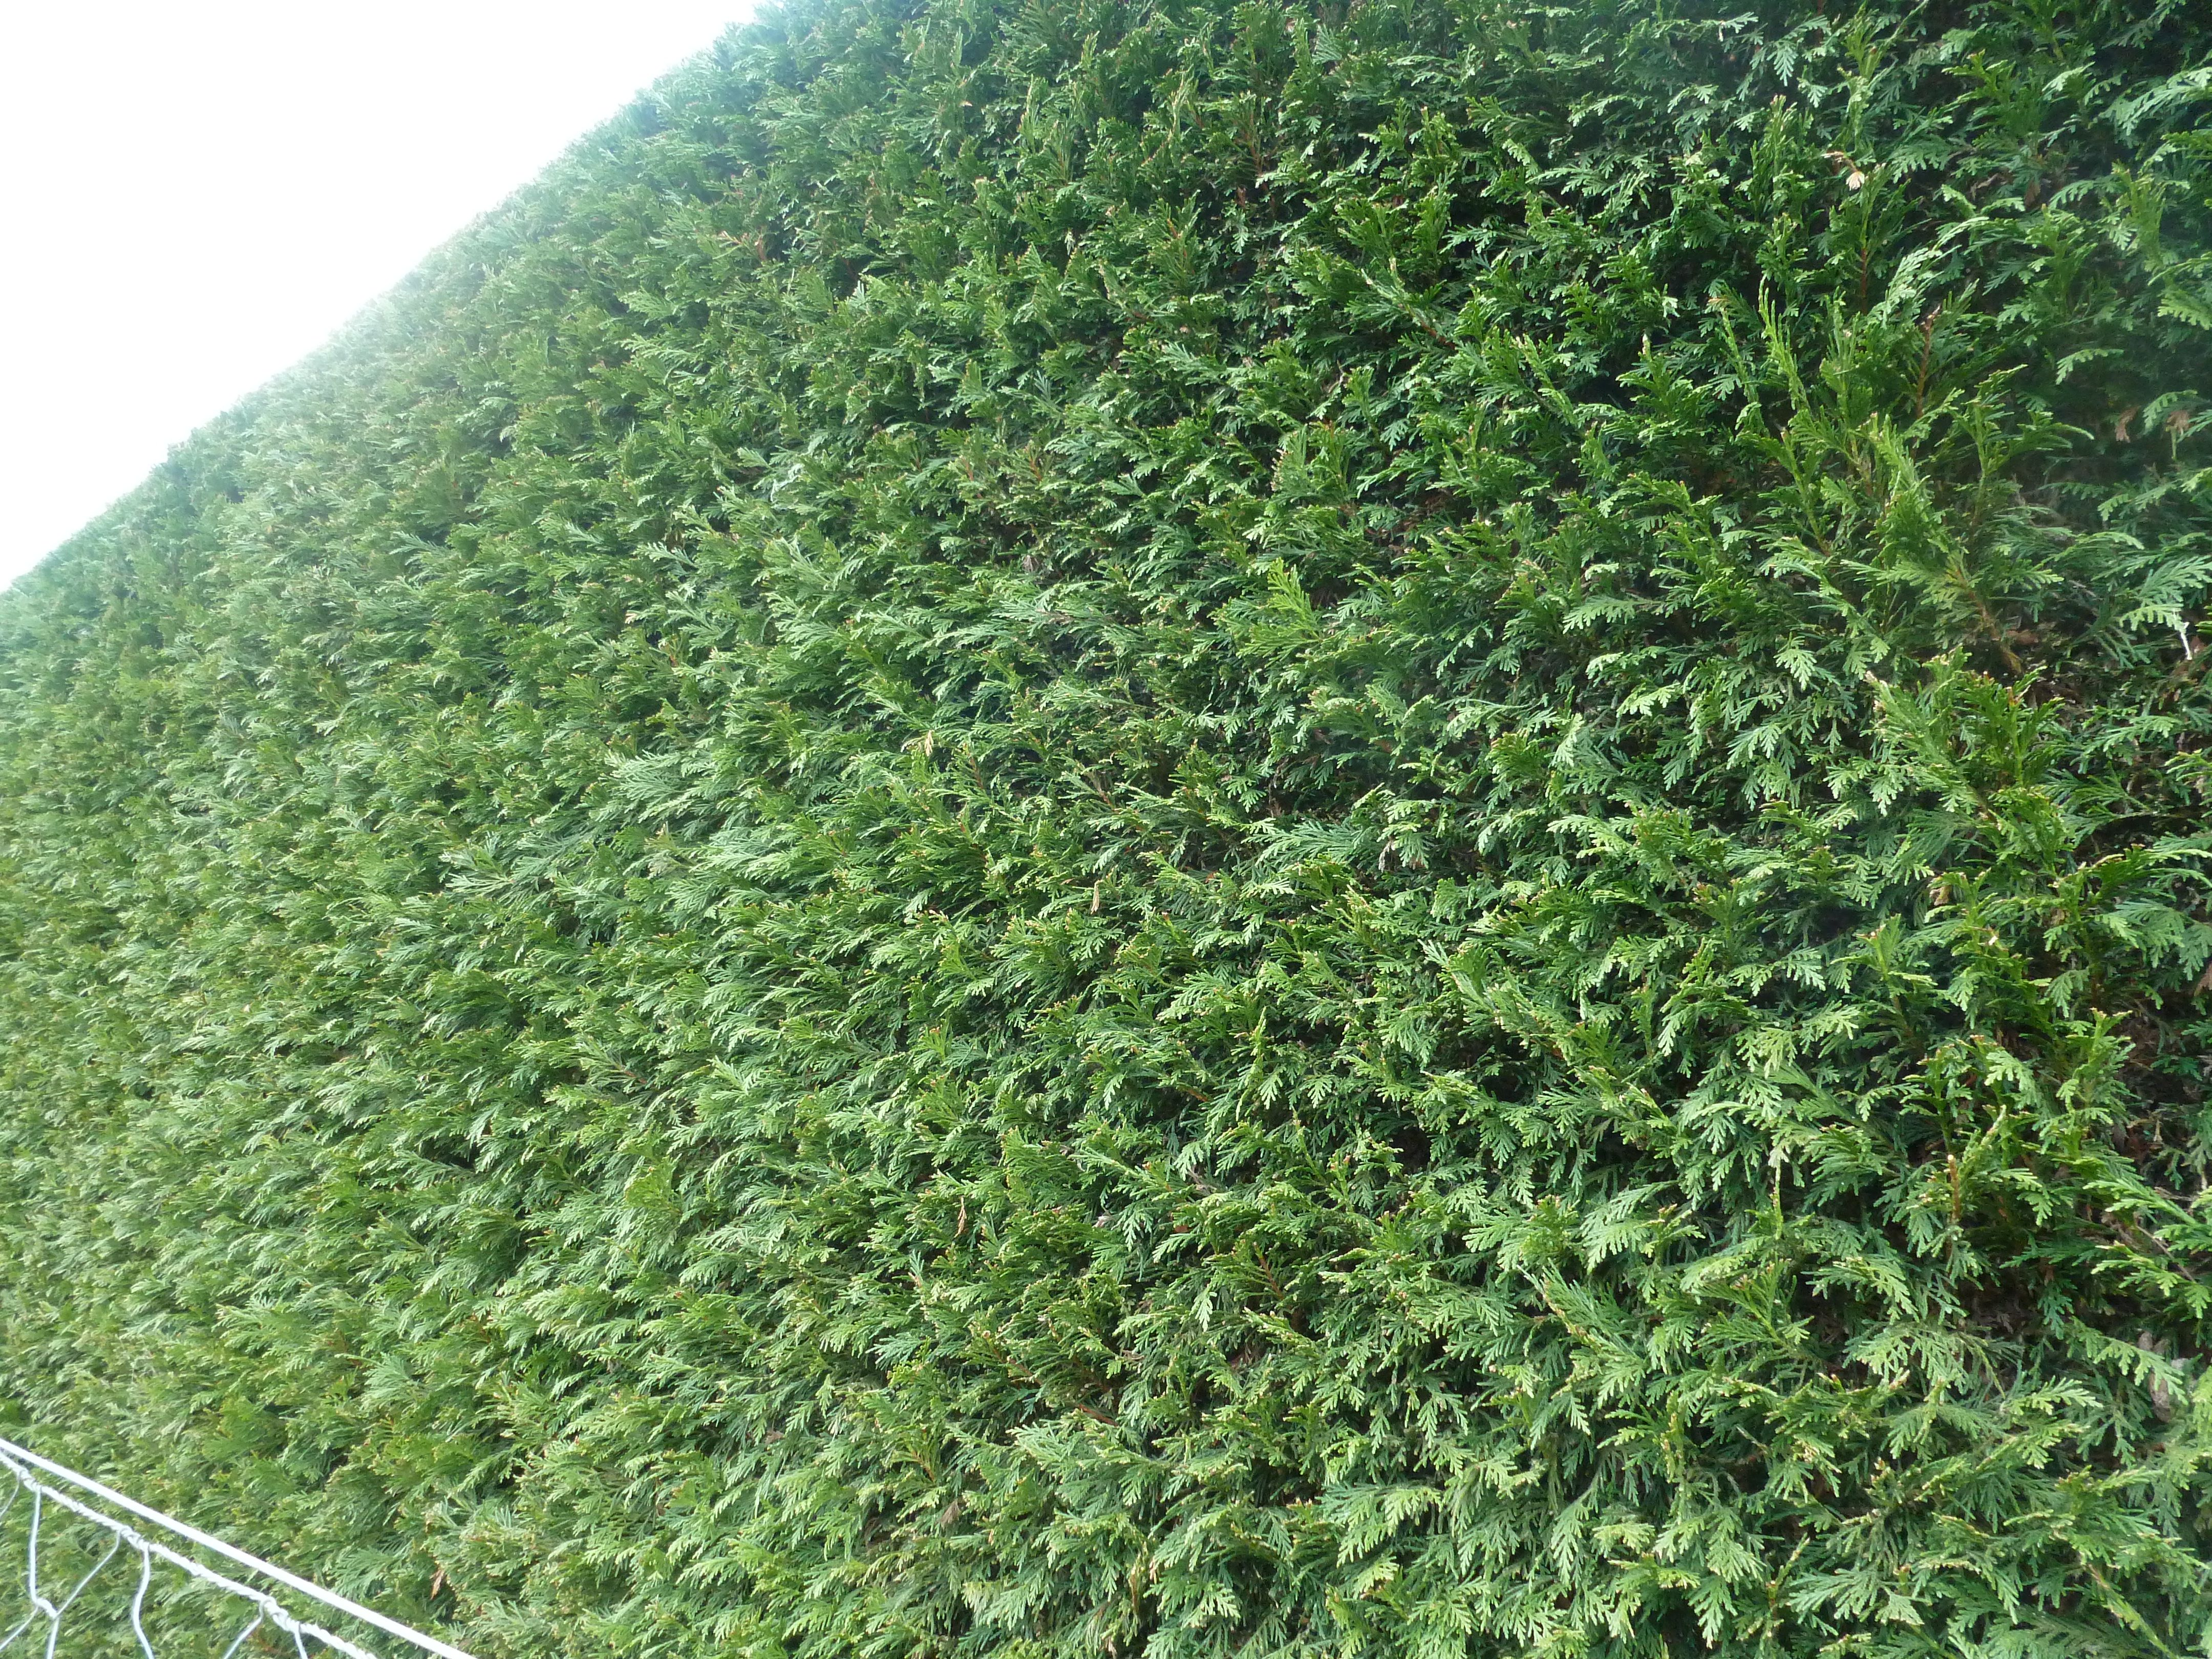 Newly clipped Leylandii hedge plants available from